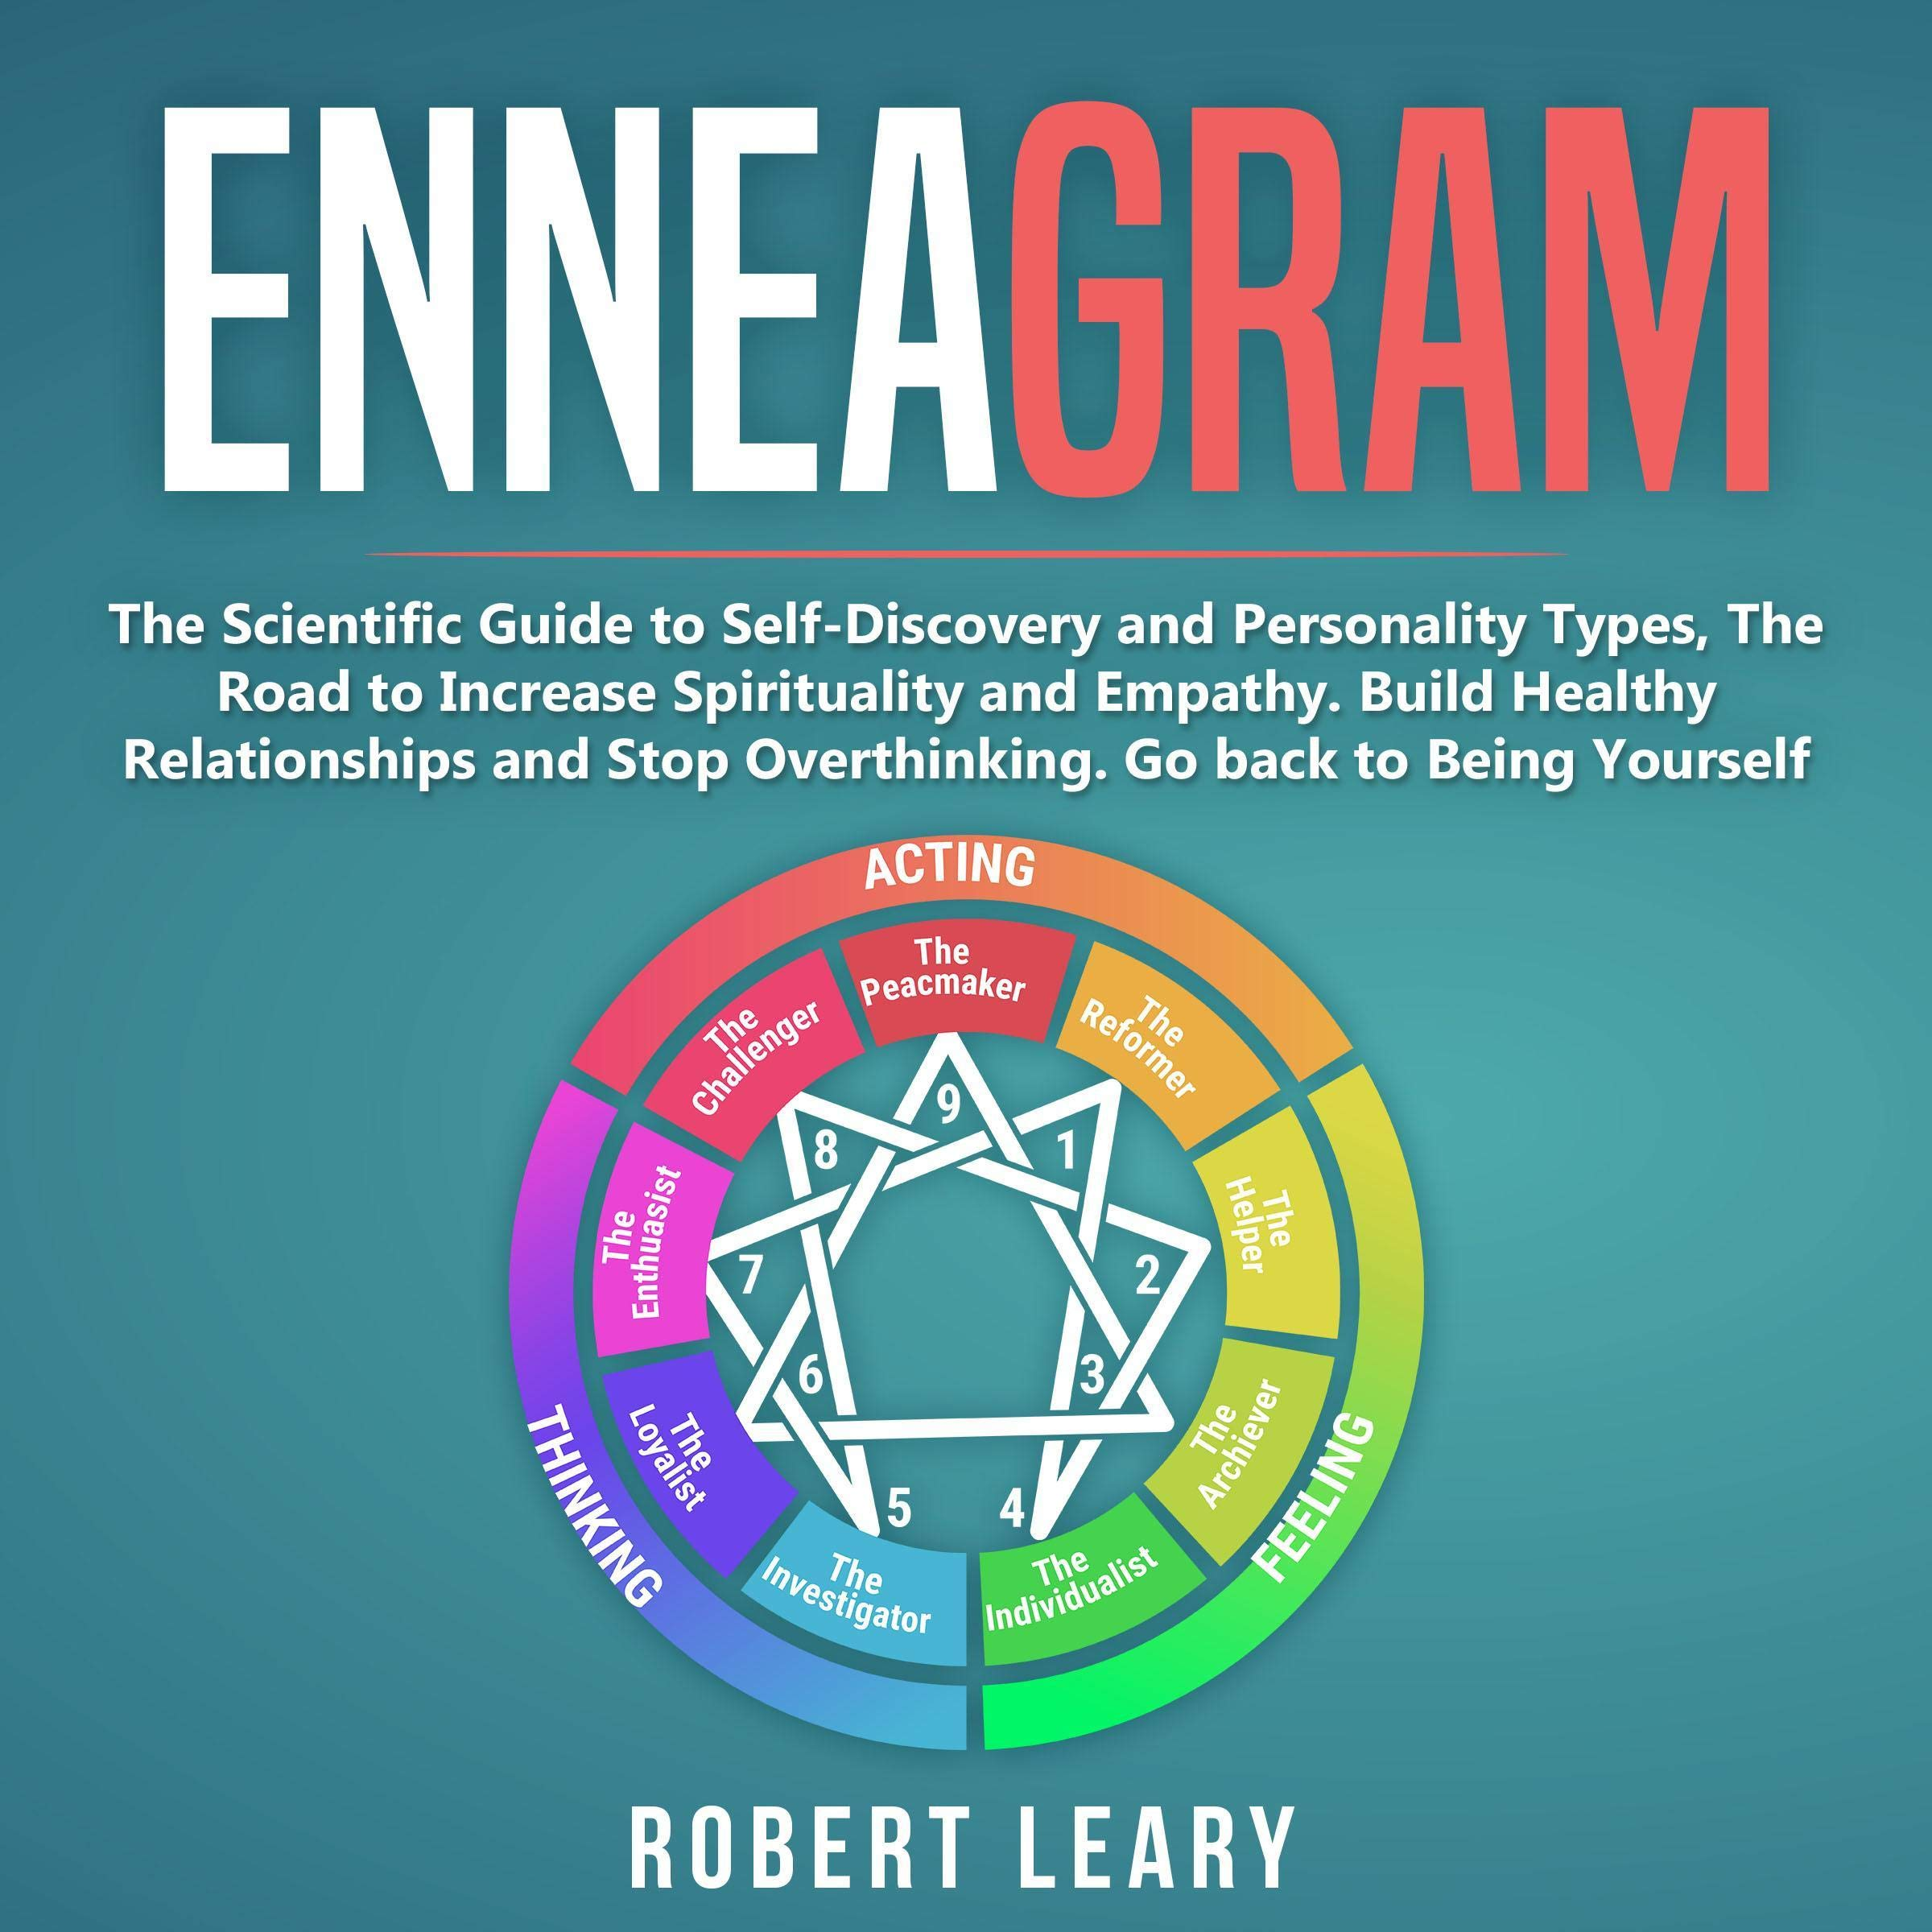 Enneagram  The Scientific Guide To Self Discovery And Personality Types The Road To Increase Spirituality And Empathy. Build Healthy Relationships And Stop Overthinking. Go Back To Being Yourself